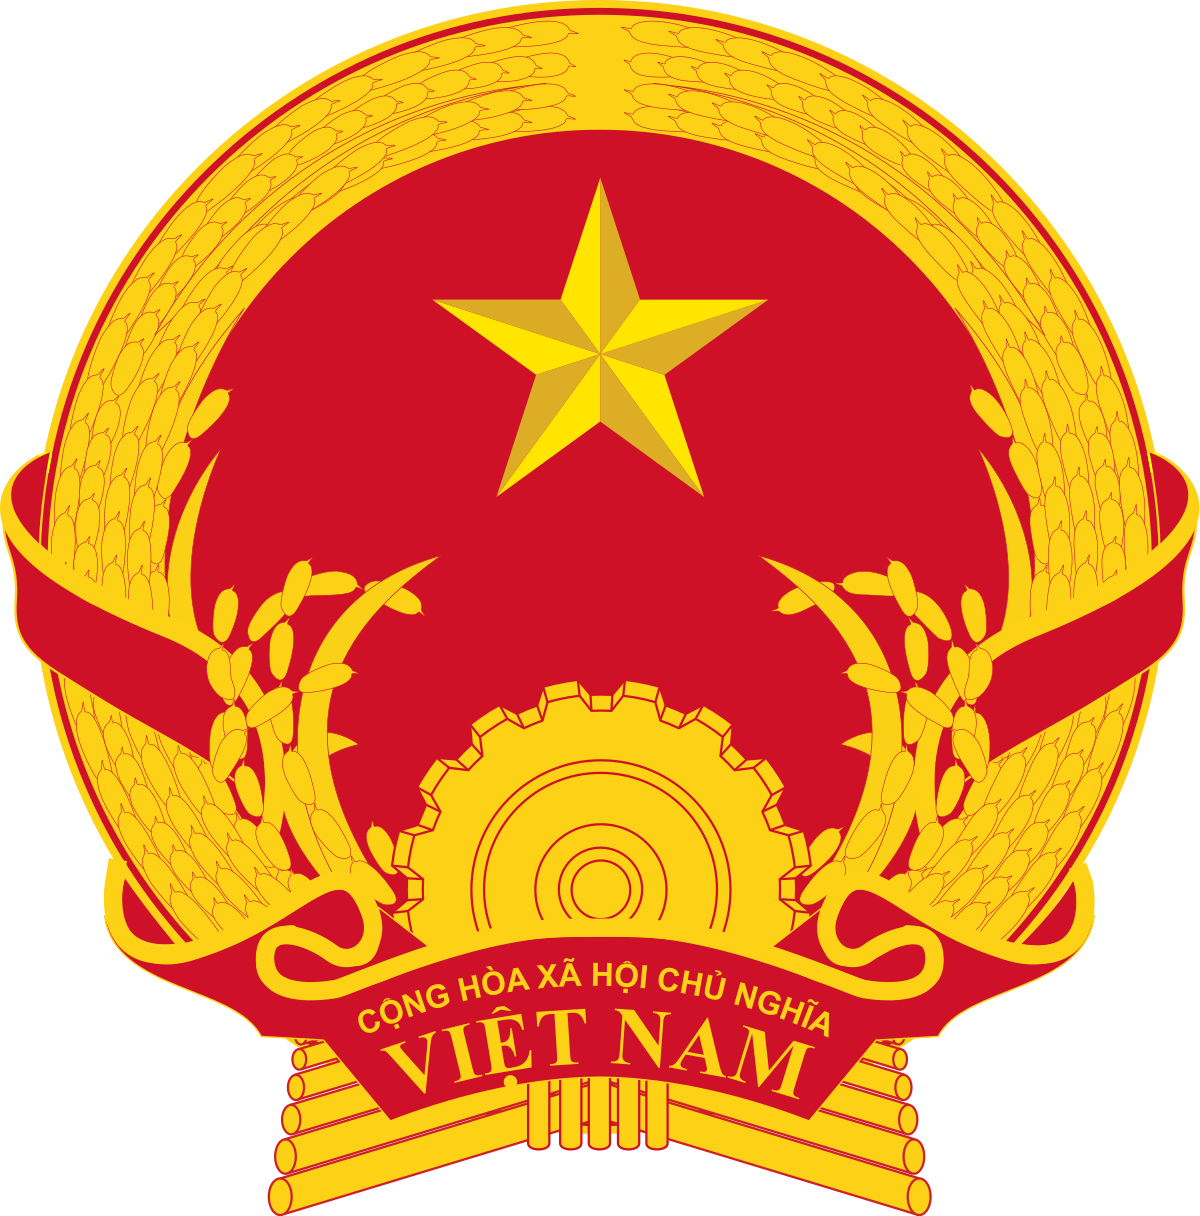 Vietnam political view about different aspects